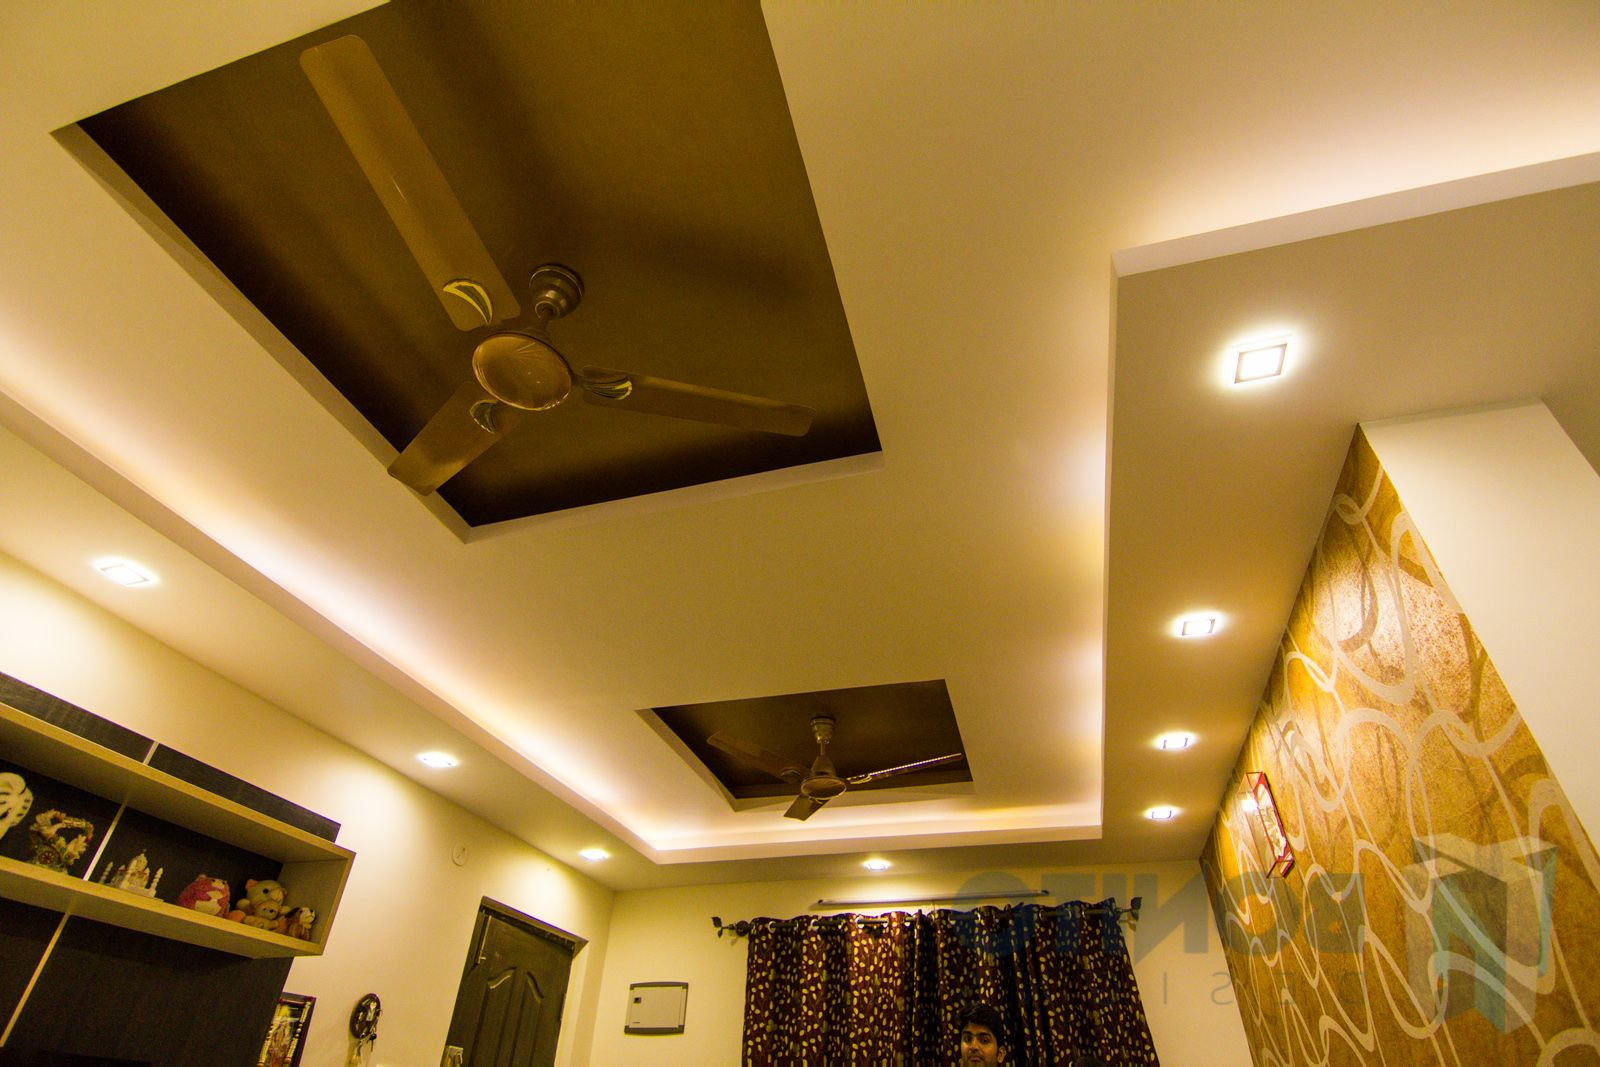 Inspirational Ceiling Design For Bedroom With Fan